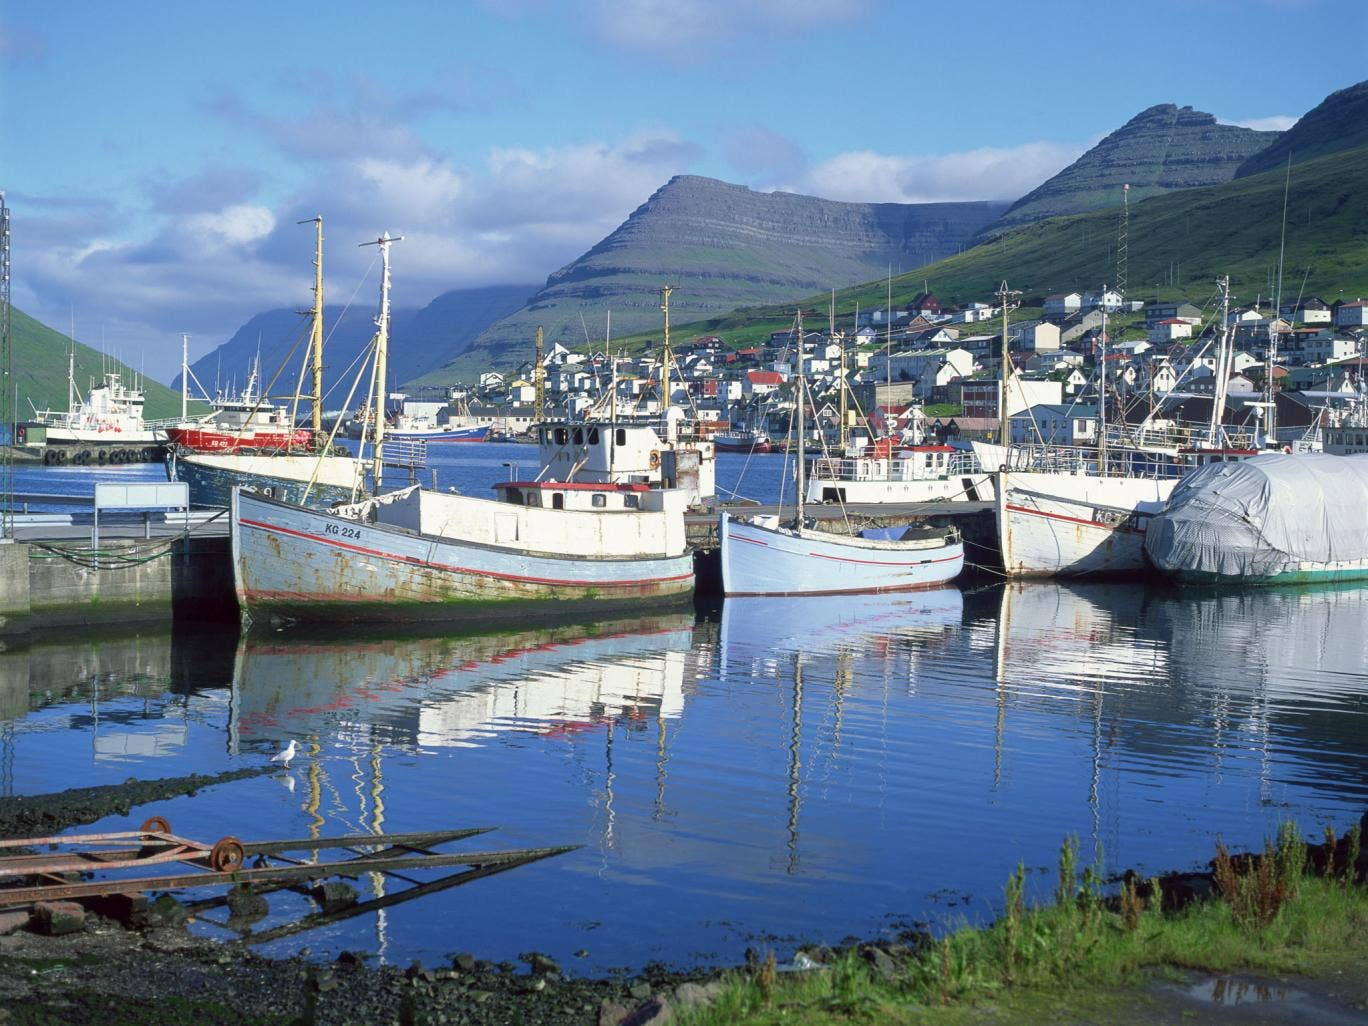 Fishing is the main industry of the Faroe Islands